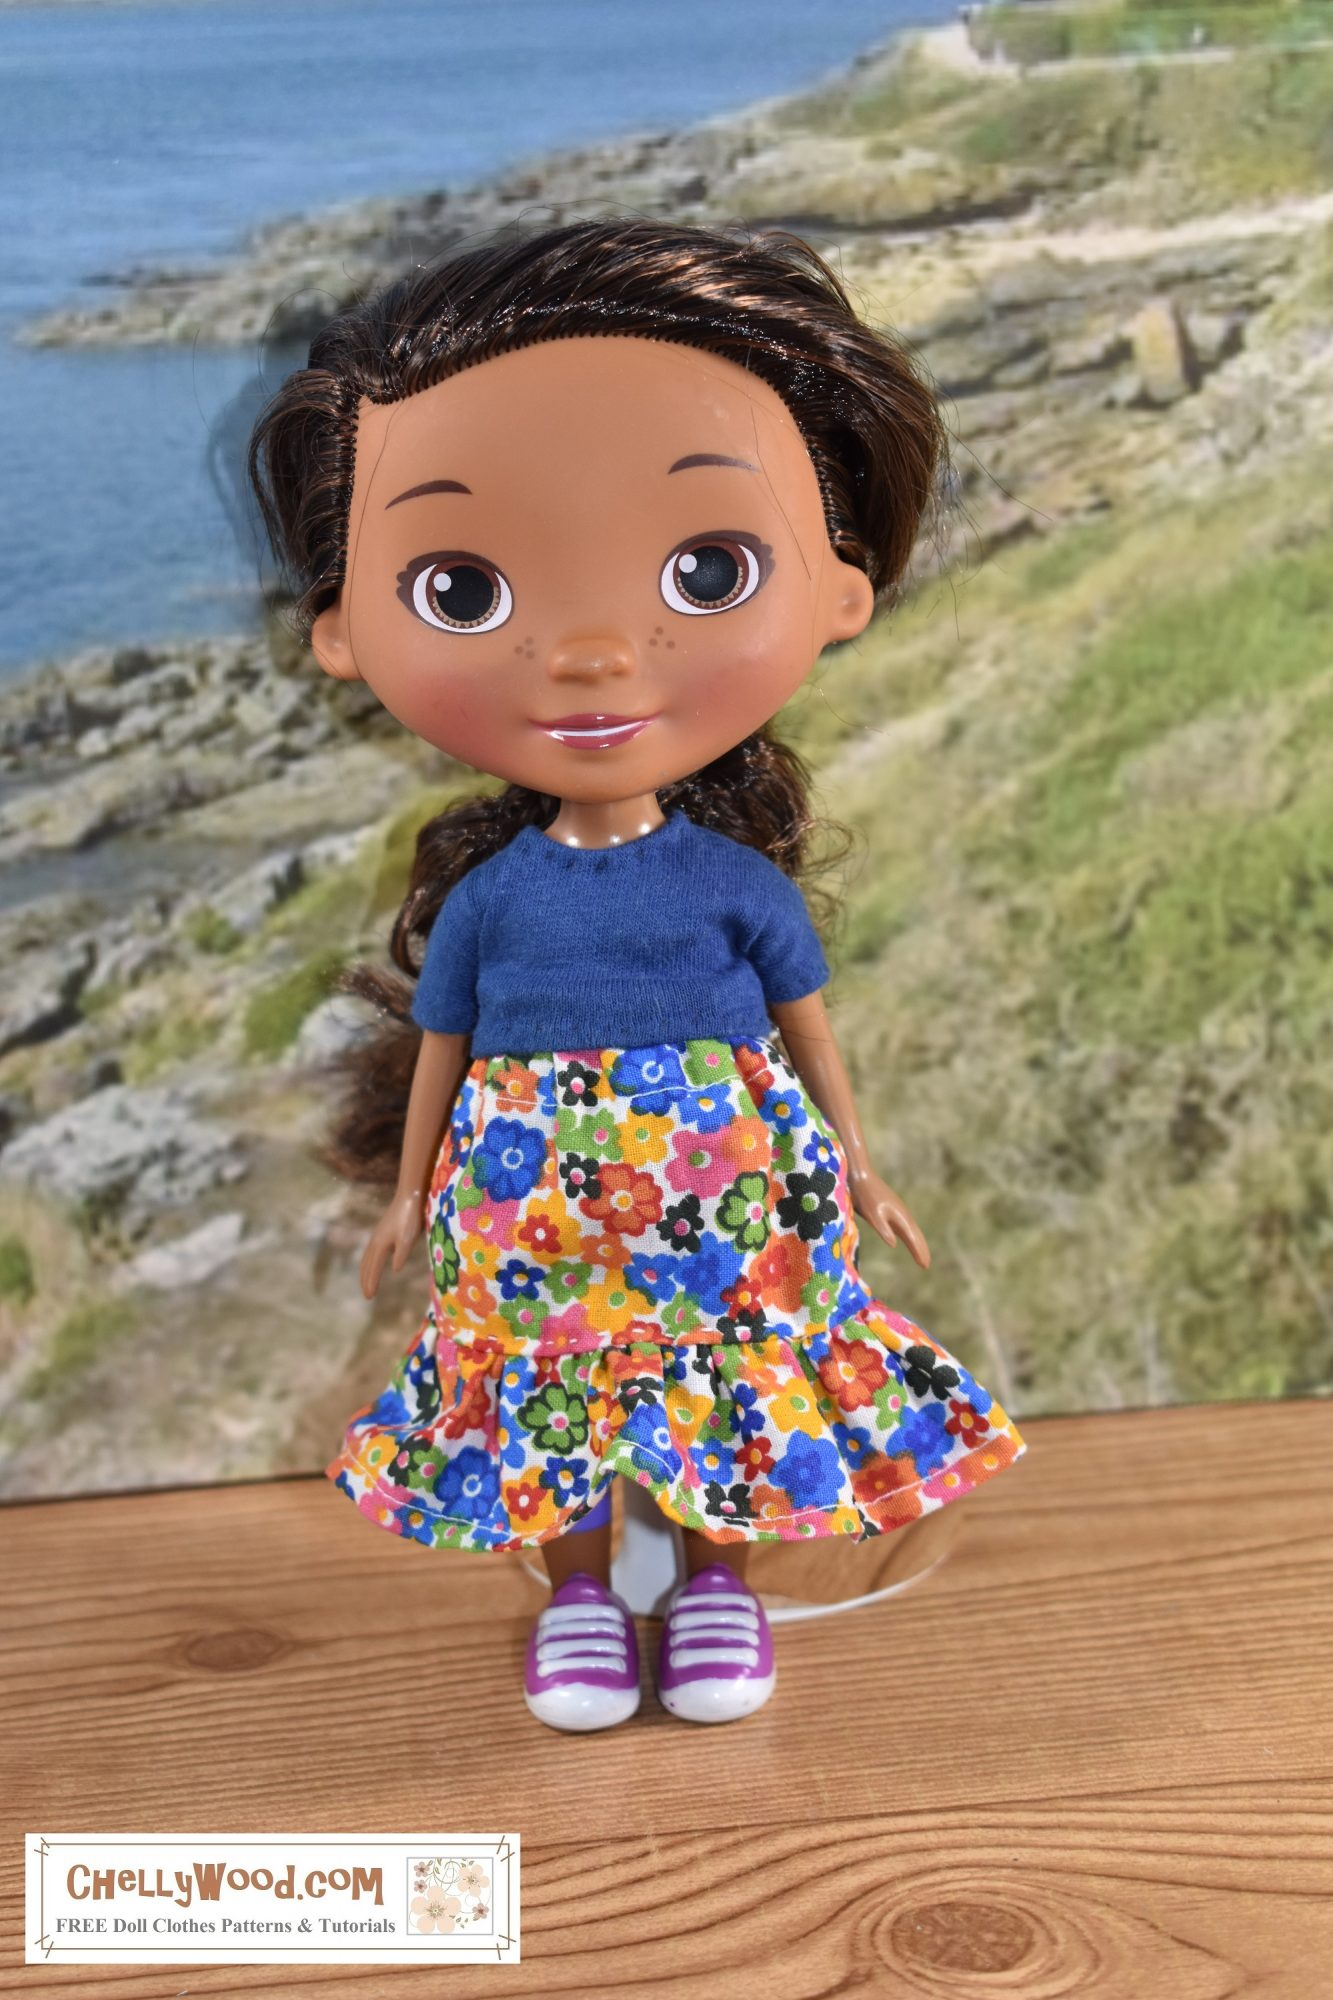 With a rocky beach behind her, we see a Doc McStuffins doll here, modeling a handmade short-sleeved T-shirt and an elastic-waist skirt with a ruffle. The skirt's fabric is decorated with hundreds of tiny bright-colored flowers in a retro style. Click on the link in the caption, and it will take you to a page where you can download and print all the free printable sewing patterns for making these doll clothes, along with links to tutorial videos that show you how to make this outfit.